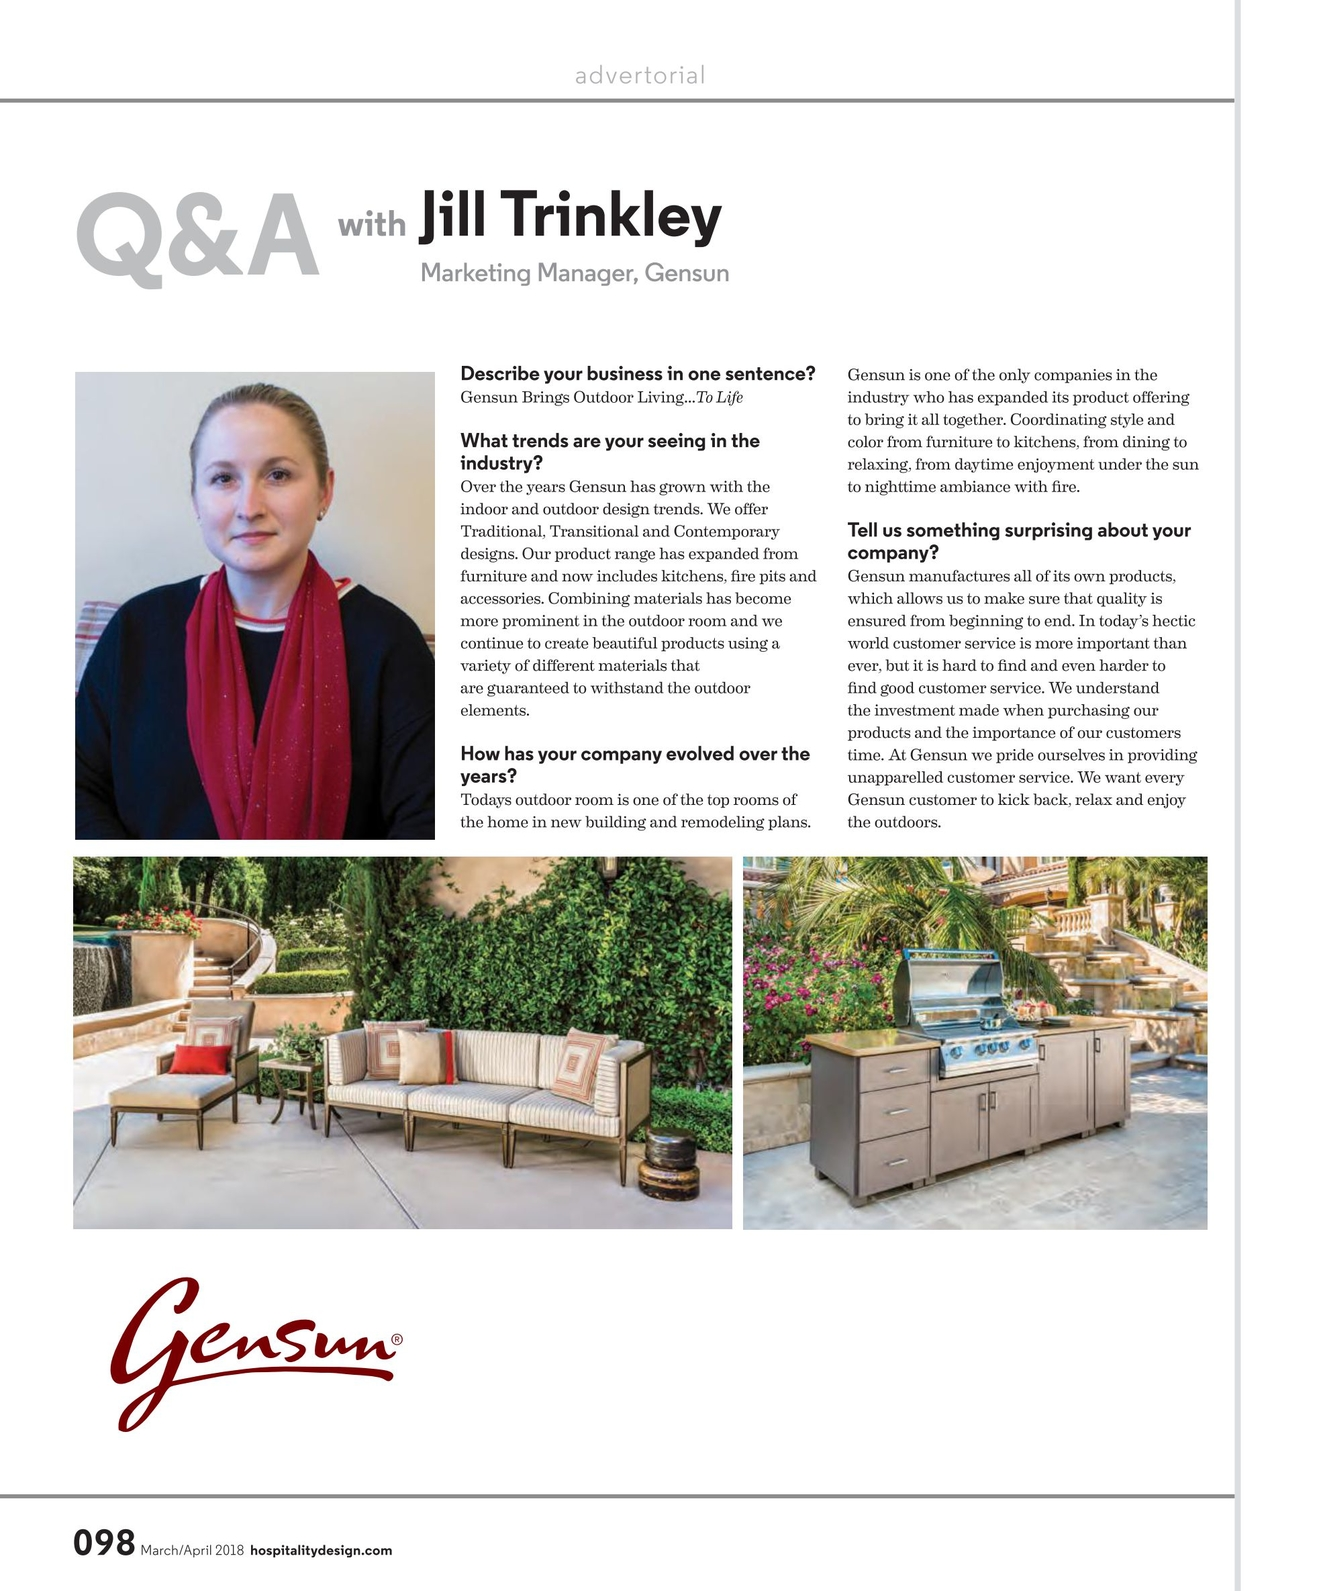 Hospitality Design - March/April 2018